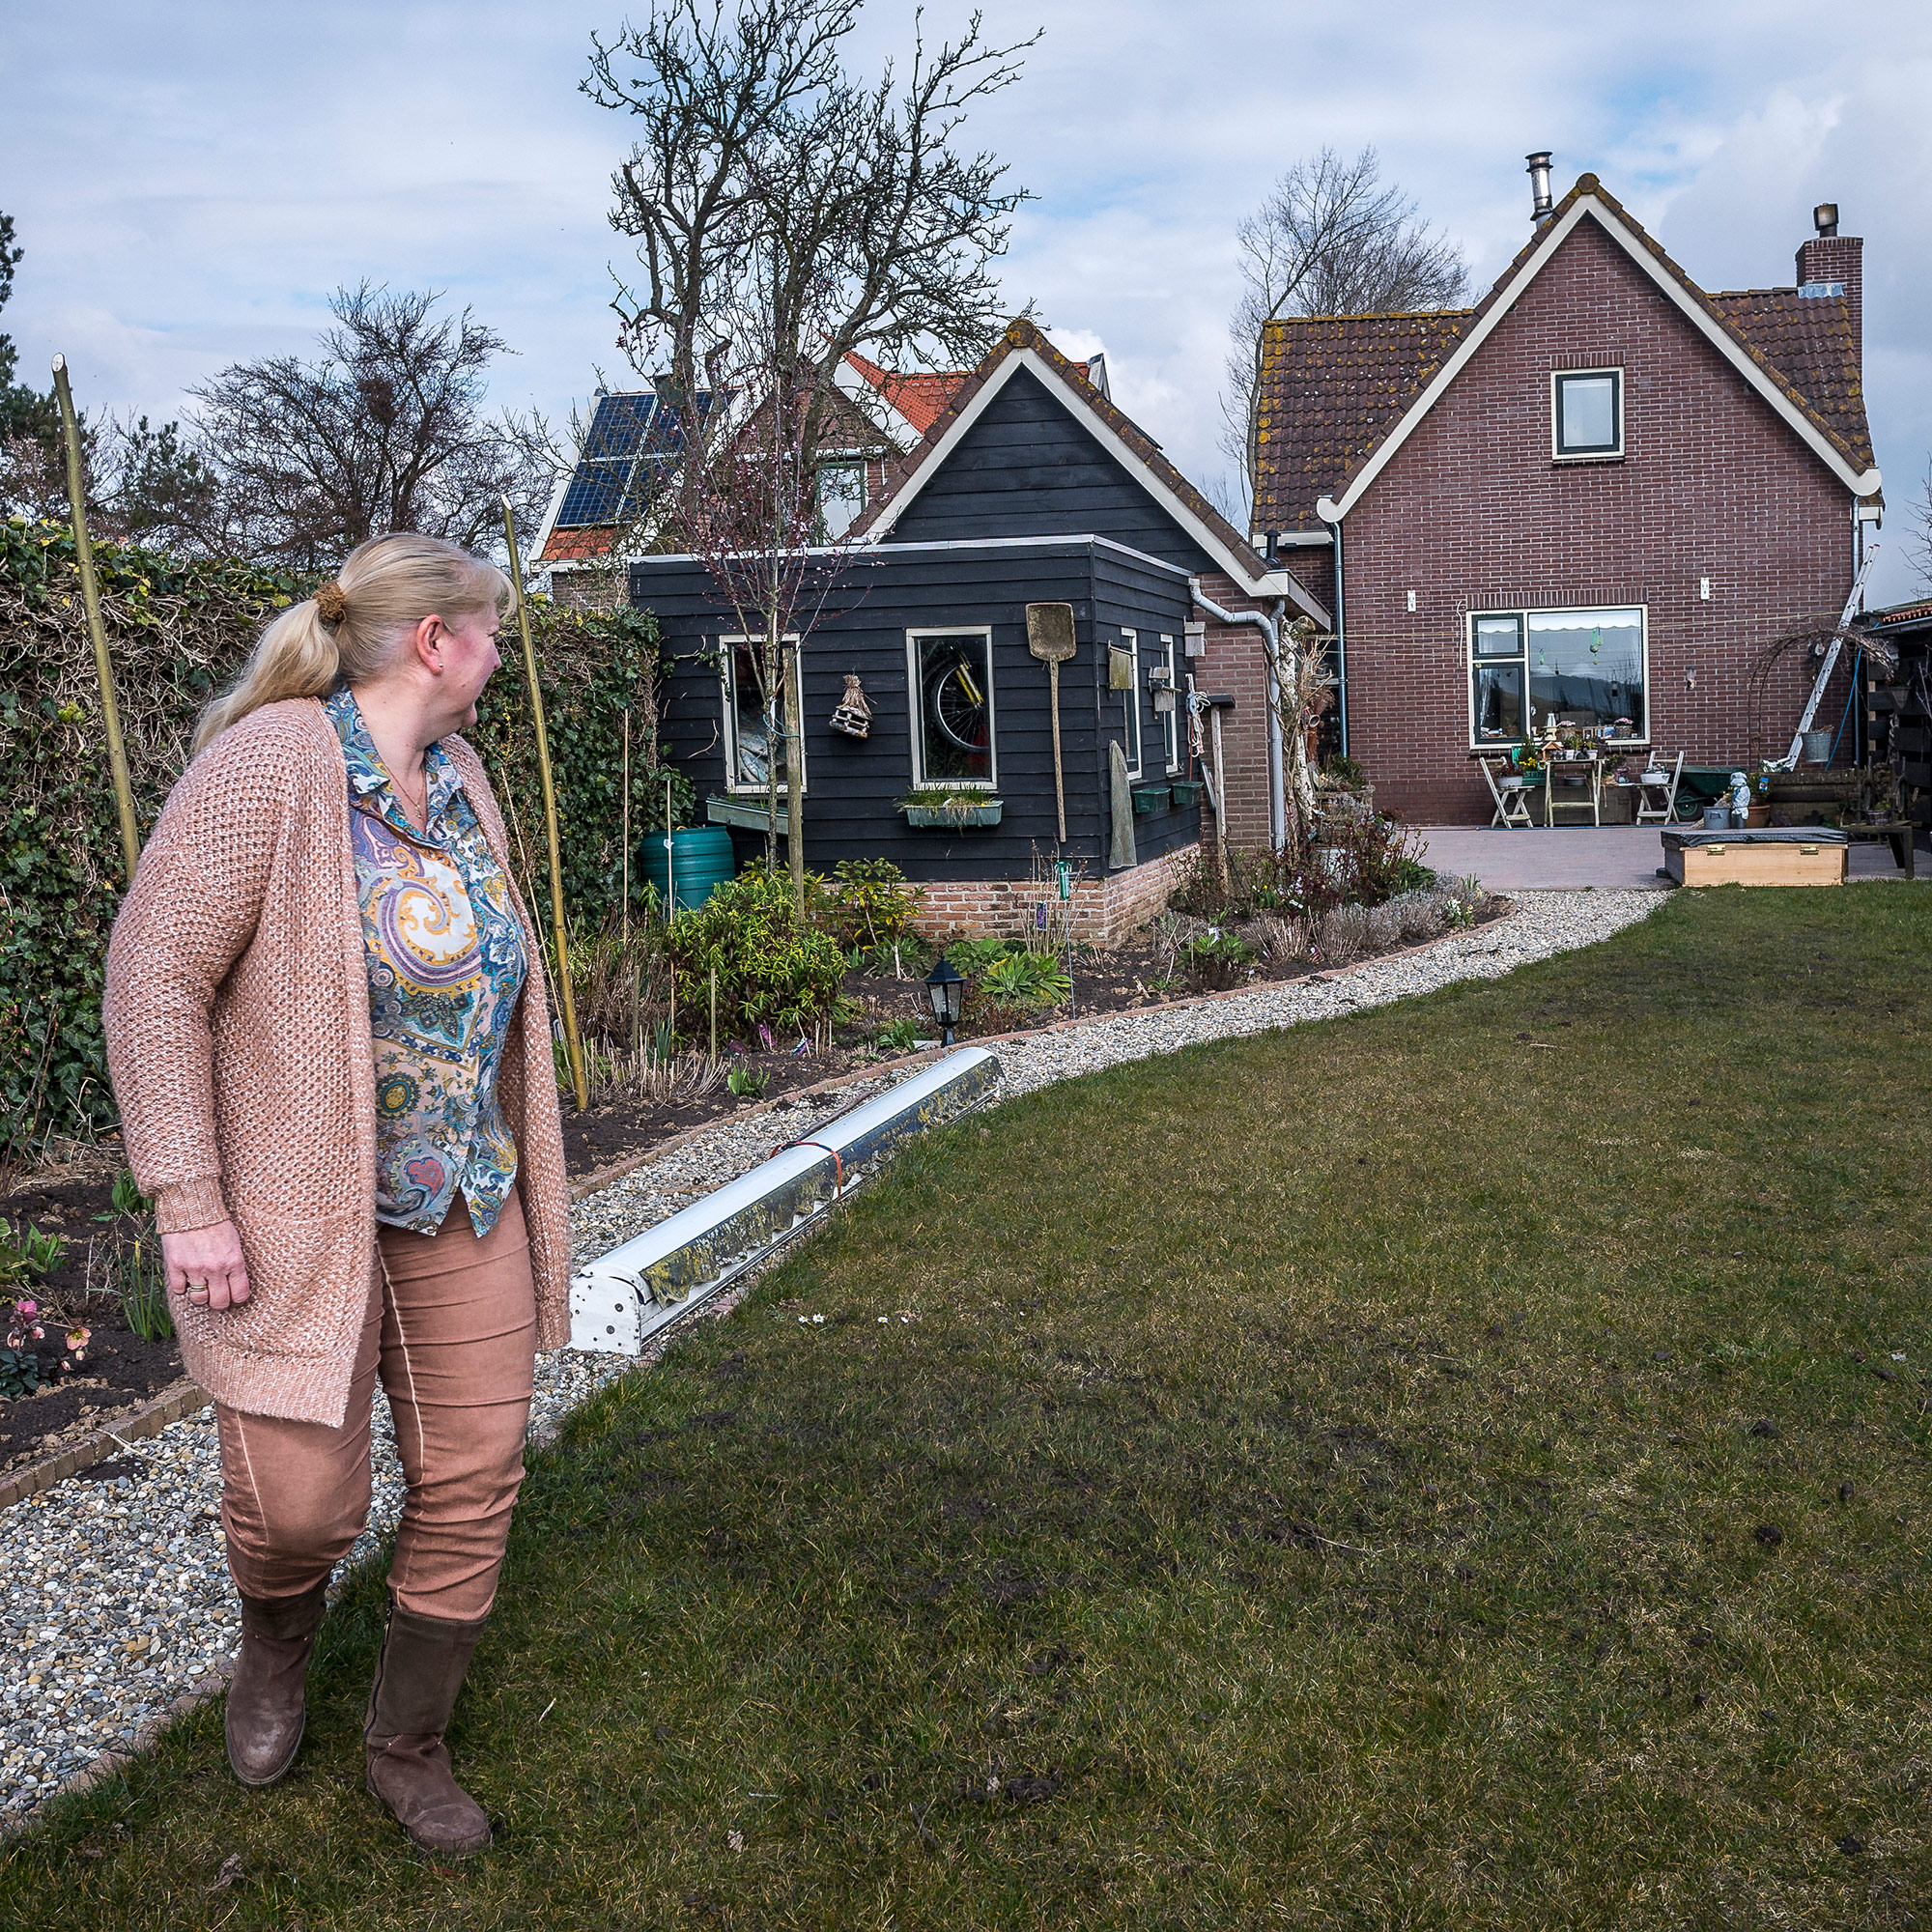 Anneke van Lelieveld led her neighbors in fighting for a fair deal with the federal water management authorities when her area was picked for a major flood control program that would return their houses to the historic floodplain. (Photo by Joris van Gennip/GroundTruth)